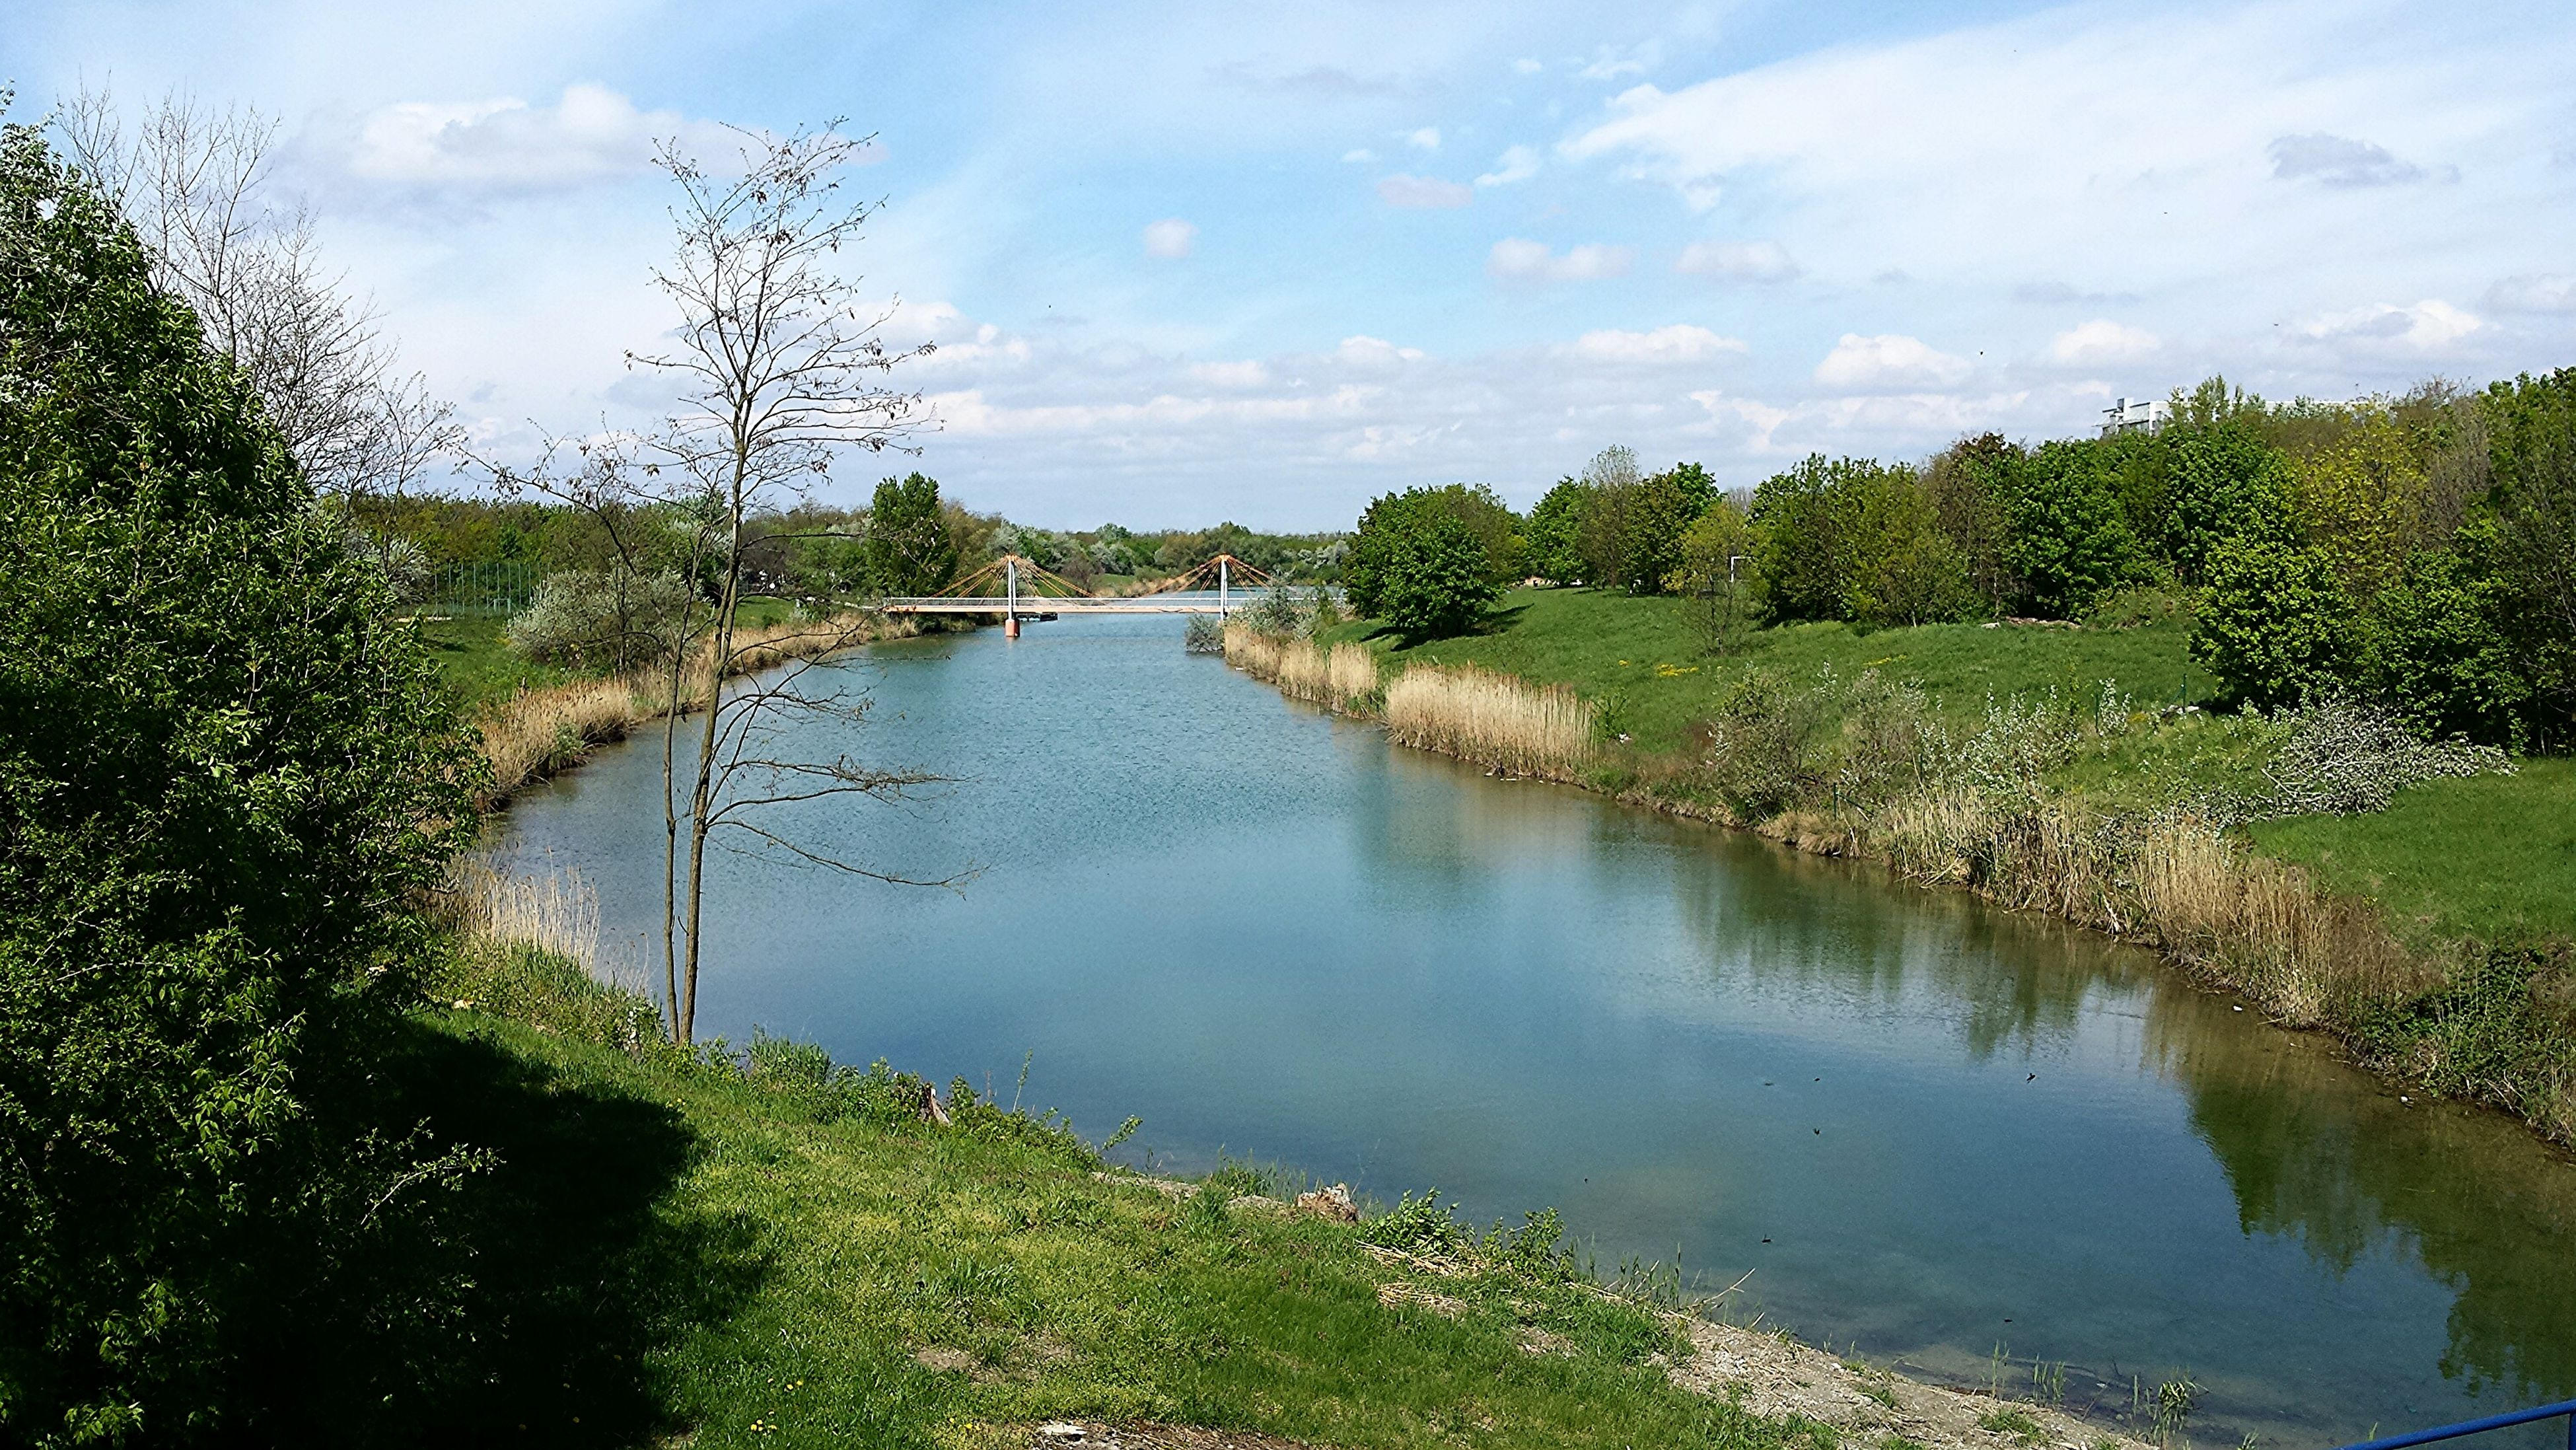 water, sky, tranquility, tranquil scene, green color, grass, nature, growth, plant, tree, scenics, beauty in nature, river, reflection, cloud - sky, lake, panoramic, day, cloud, stream